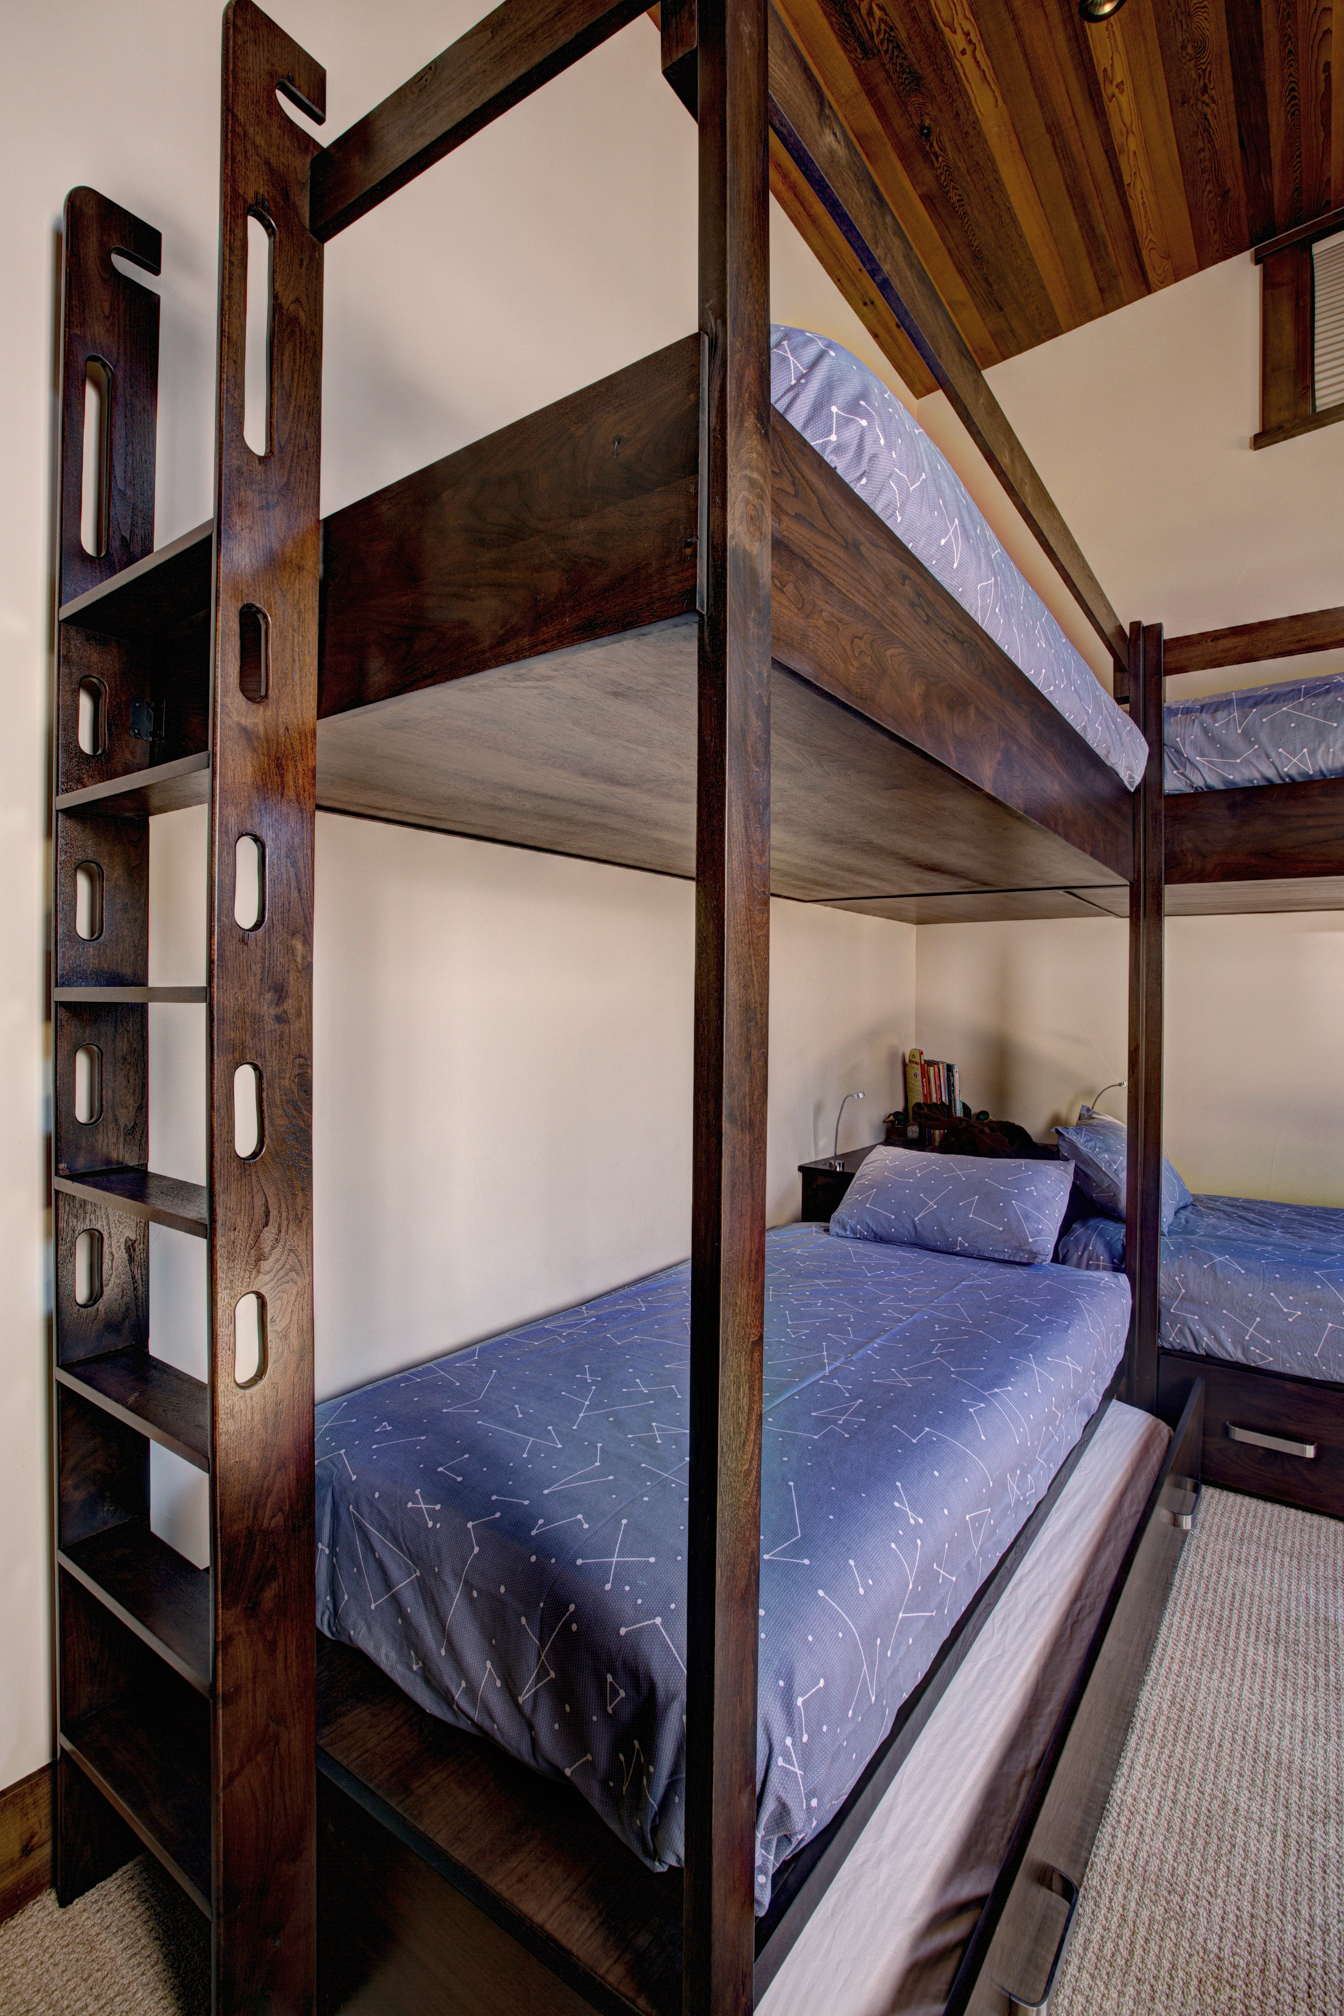 Detail Image of Built-in Walnut Bunk Beds with Trundle.